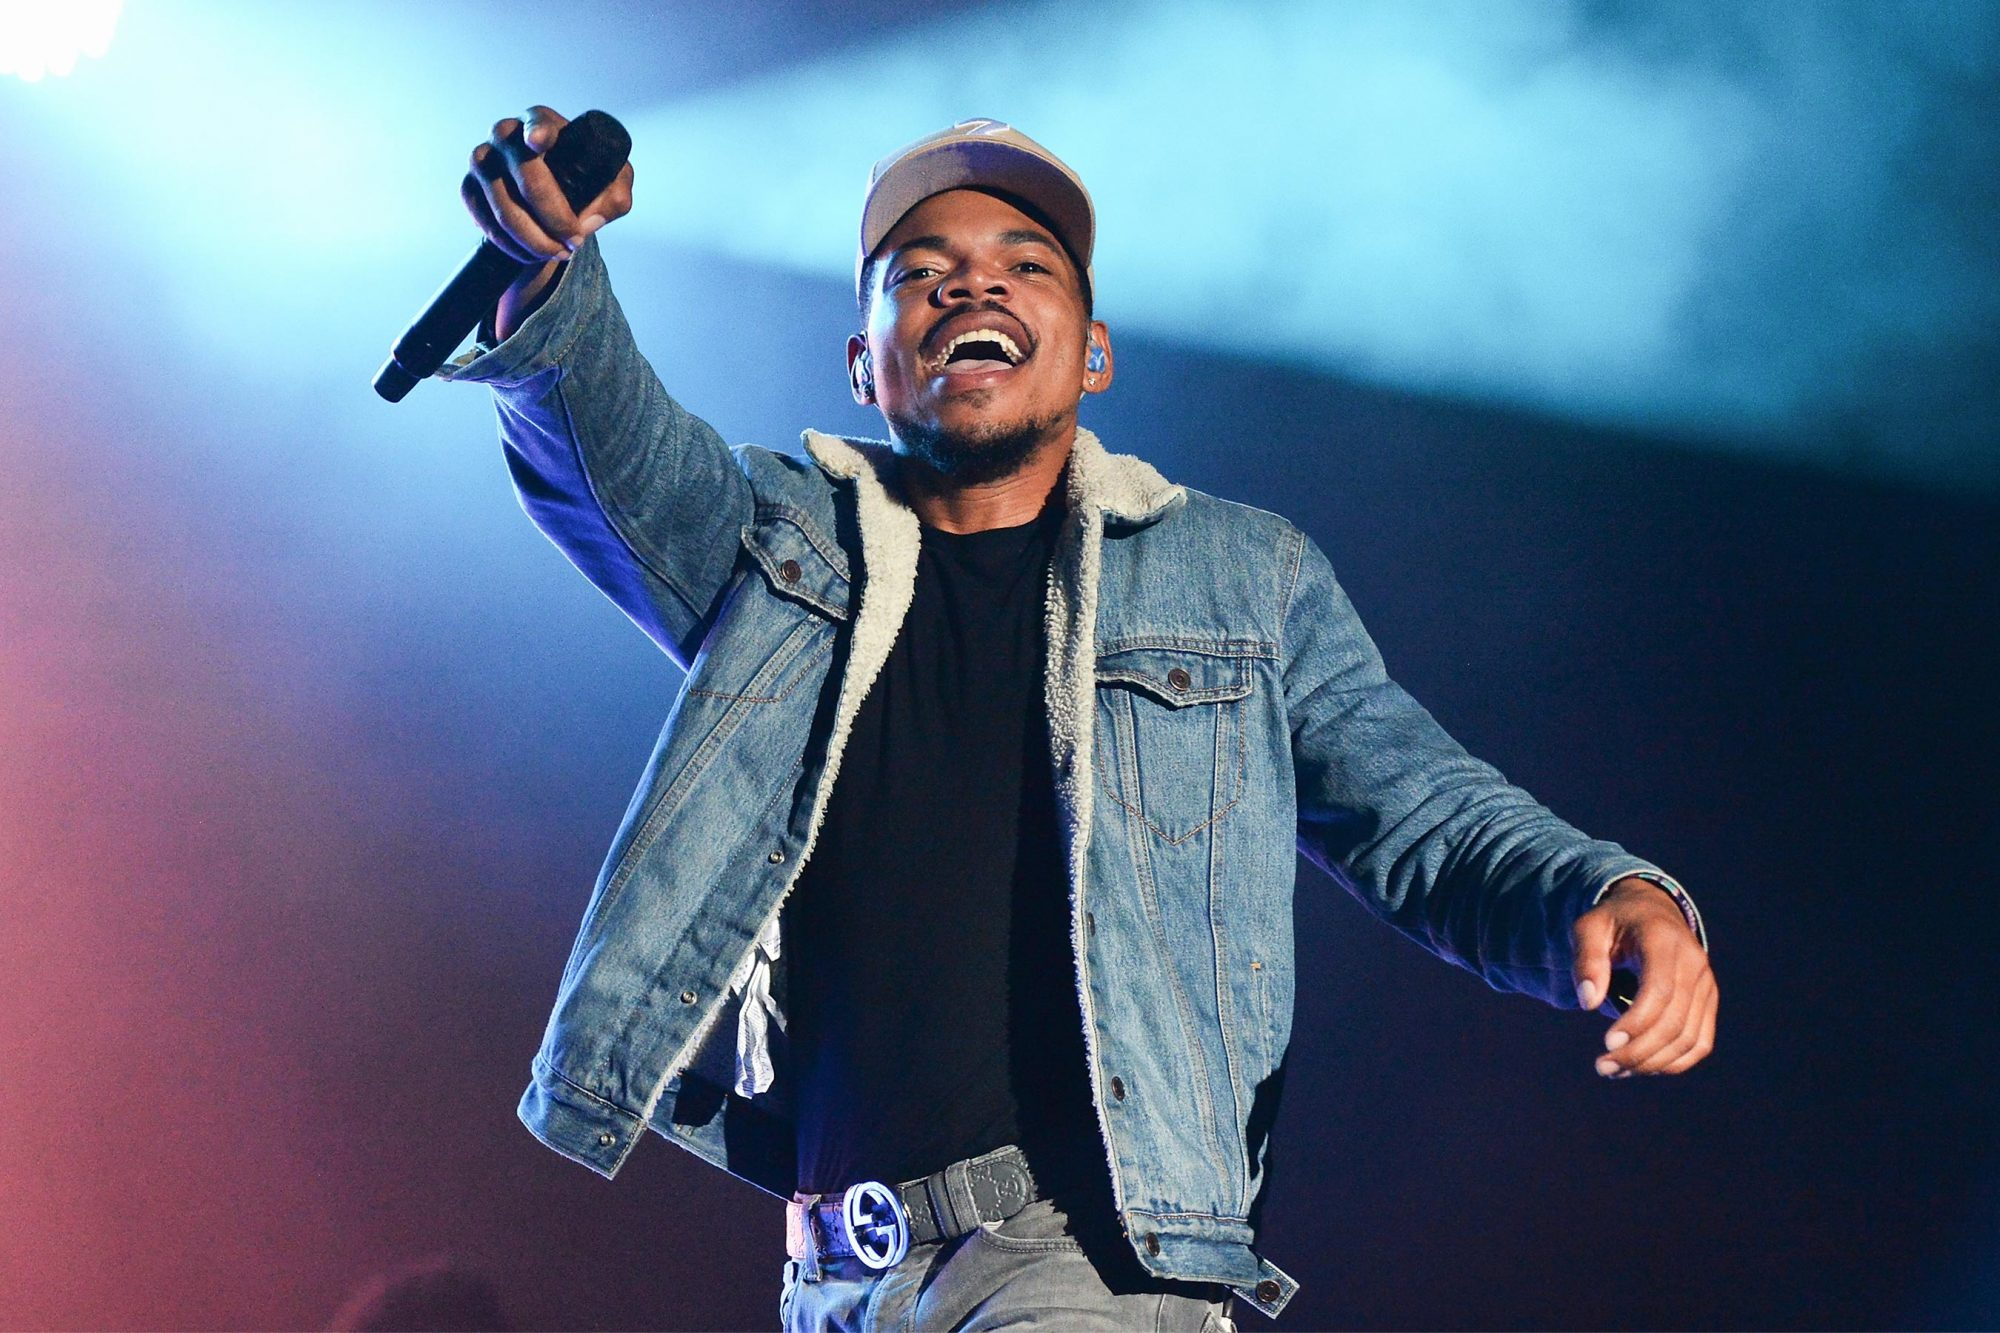 DOVER, DE - JUNE 17: Chance the Rapper performs onstage during the 2017 Firefly Music Festival on June 17, 2017 in Dover, Delaware. (Photo by Kevin Mazur/Getty Images for Firefly)